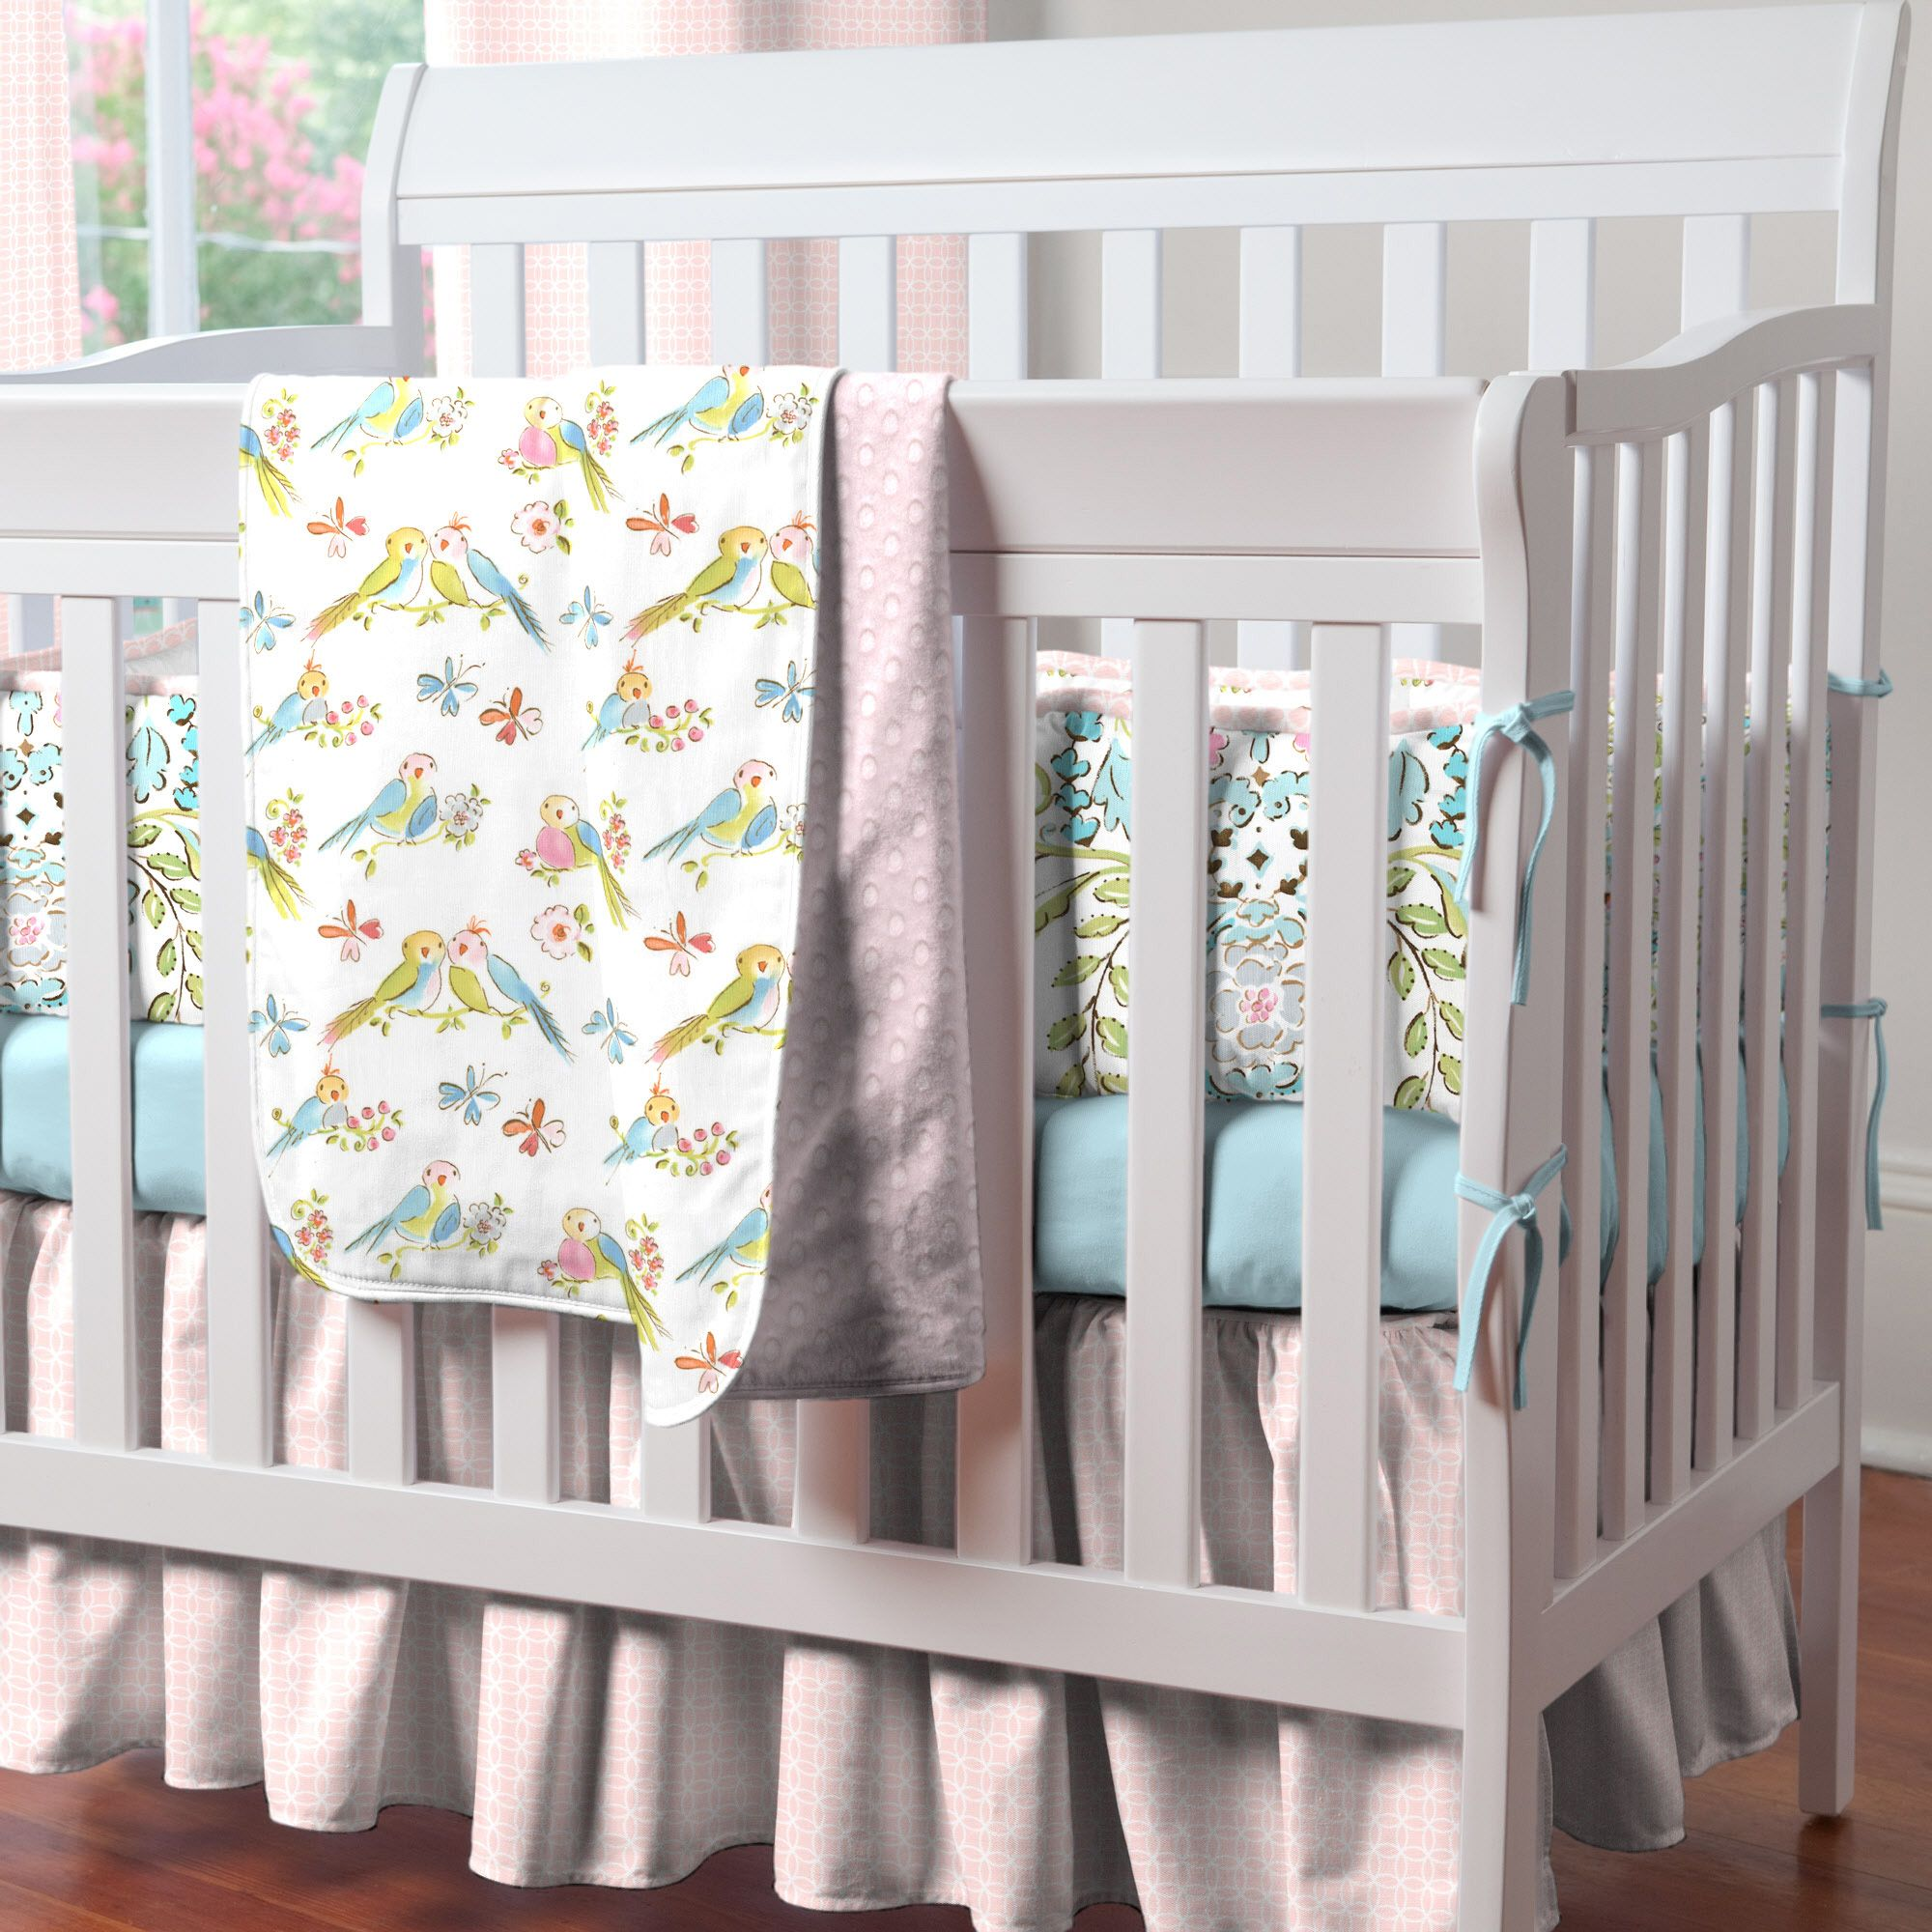 sheet child nursery full size make right bright how color pink now bedding can crib cot and set learn blue tag cribs cots navy to grey do luxury solid tal chevron furniture cus bed what start green gold tags create linens you plain of for baby modpeapod about mint a round white